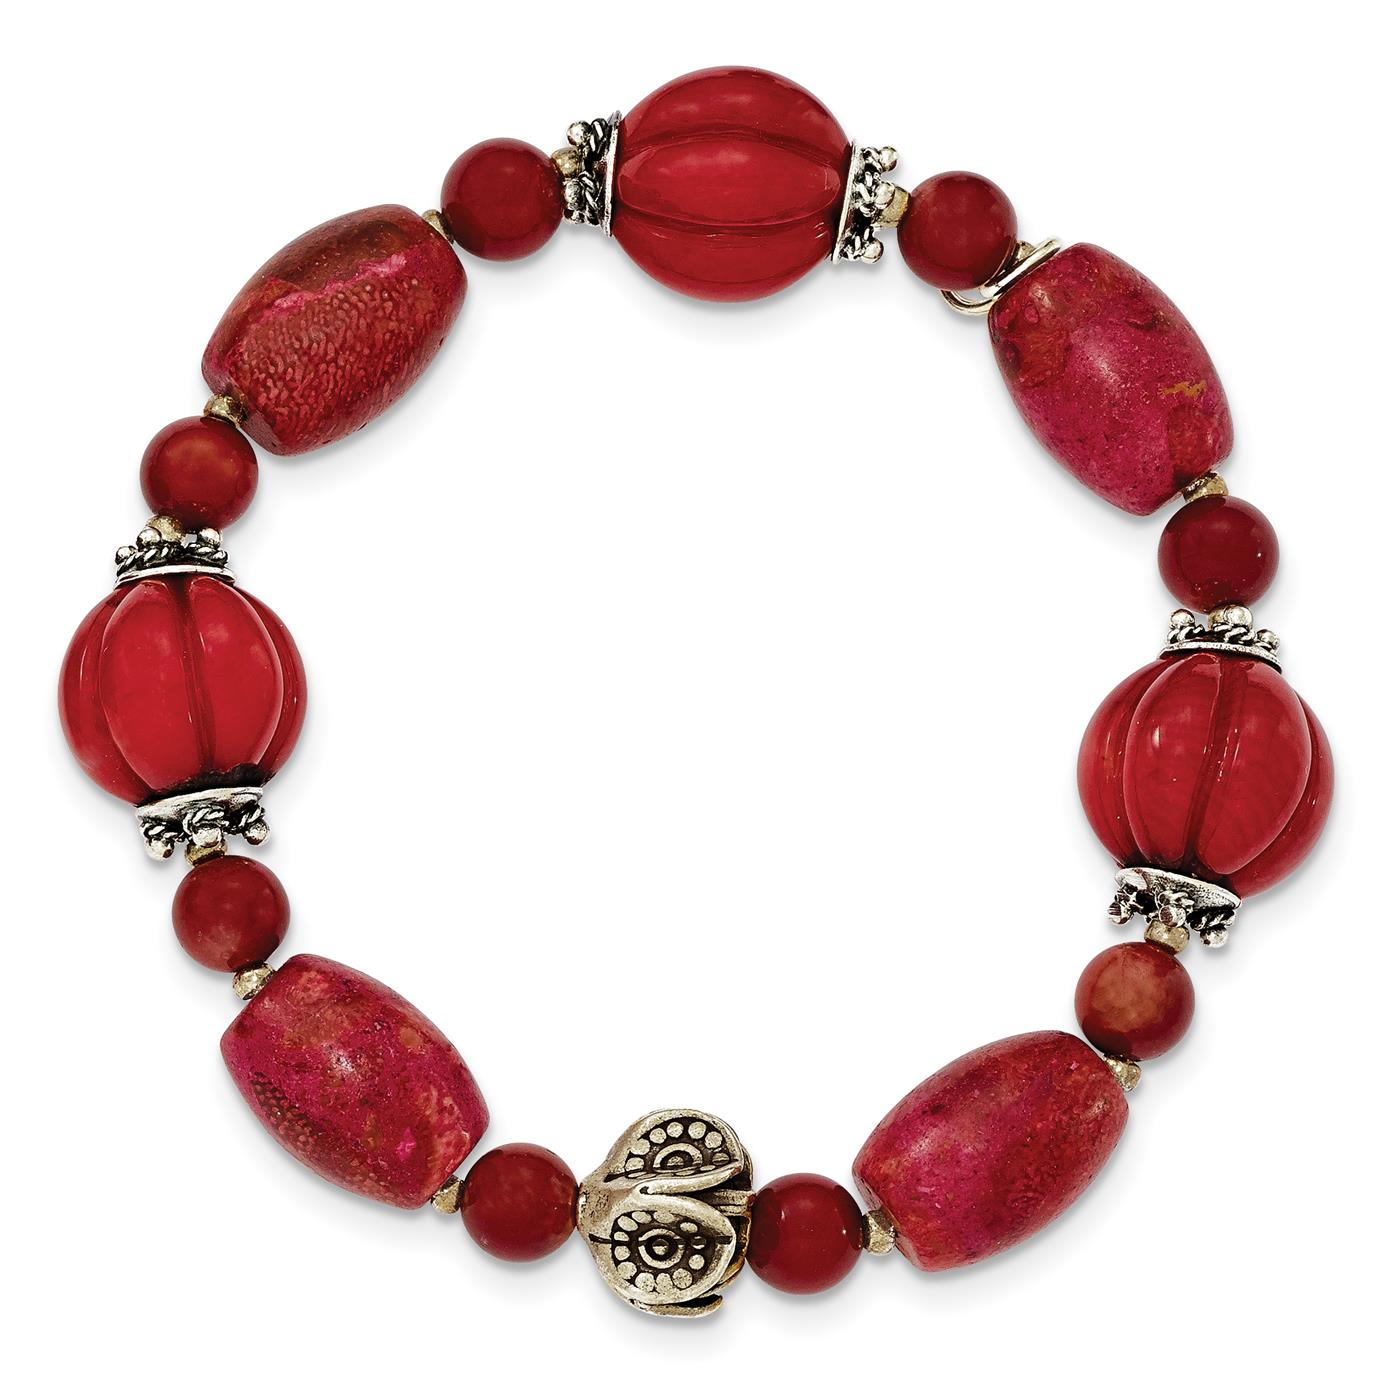 Ladies 12mm 925 Sterling Silver Antiqued Beads & Red Coral Stretchable Bracelet by